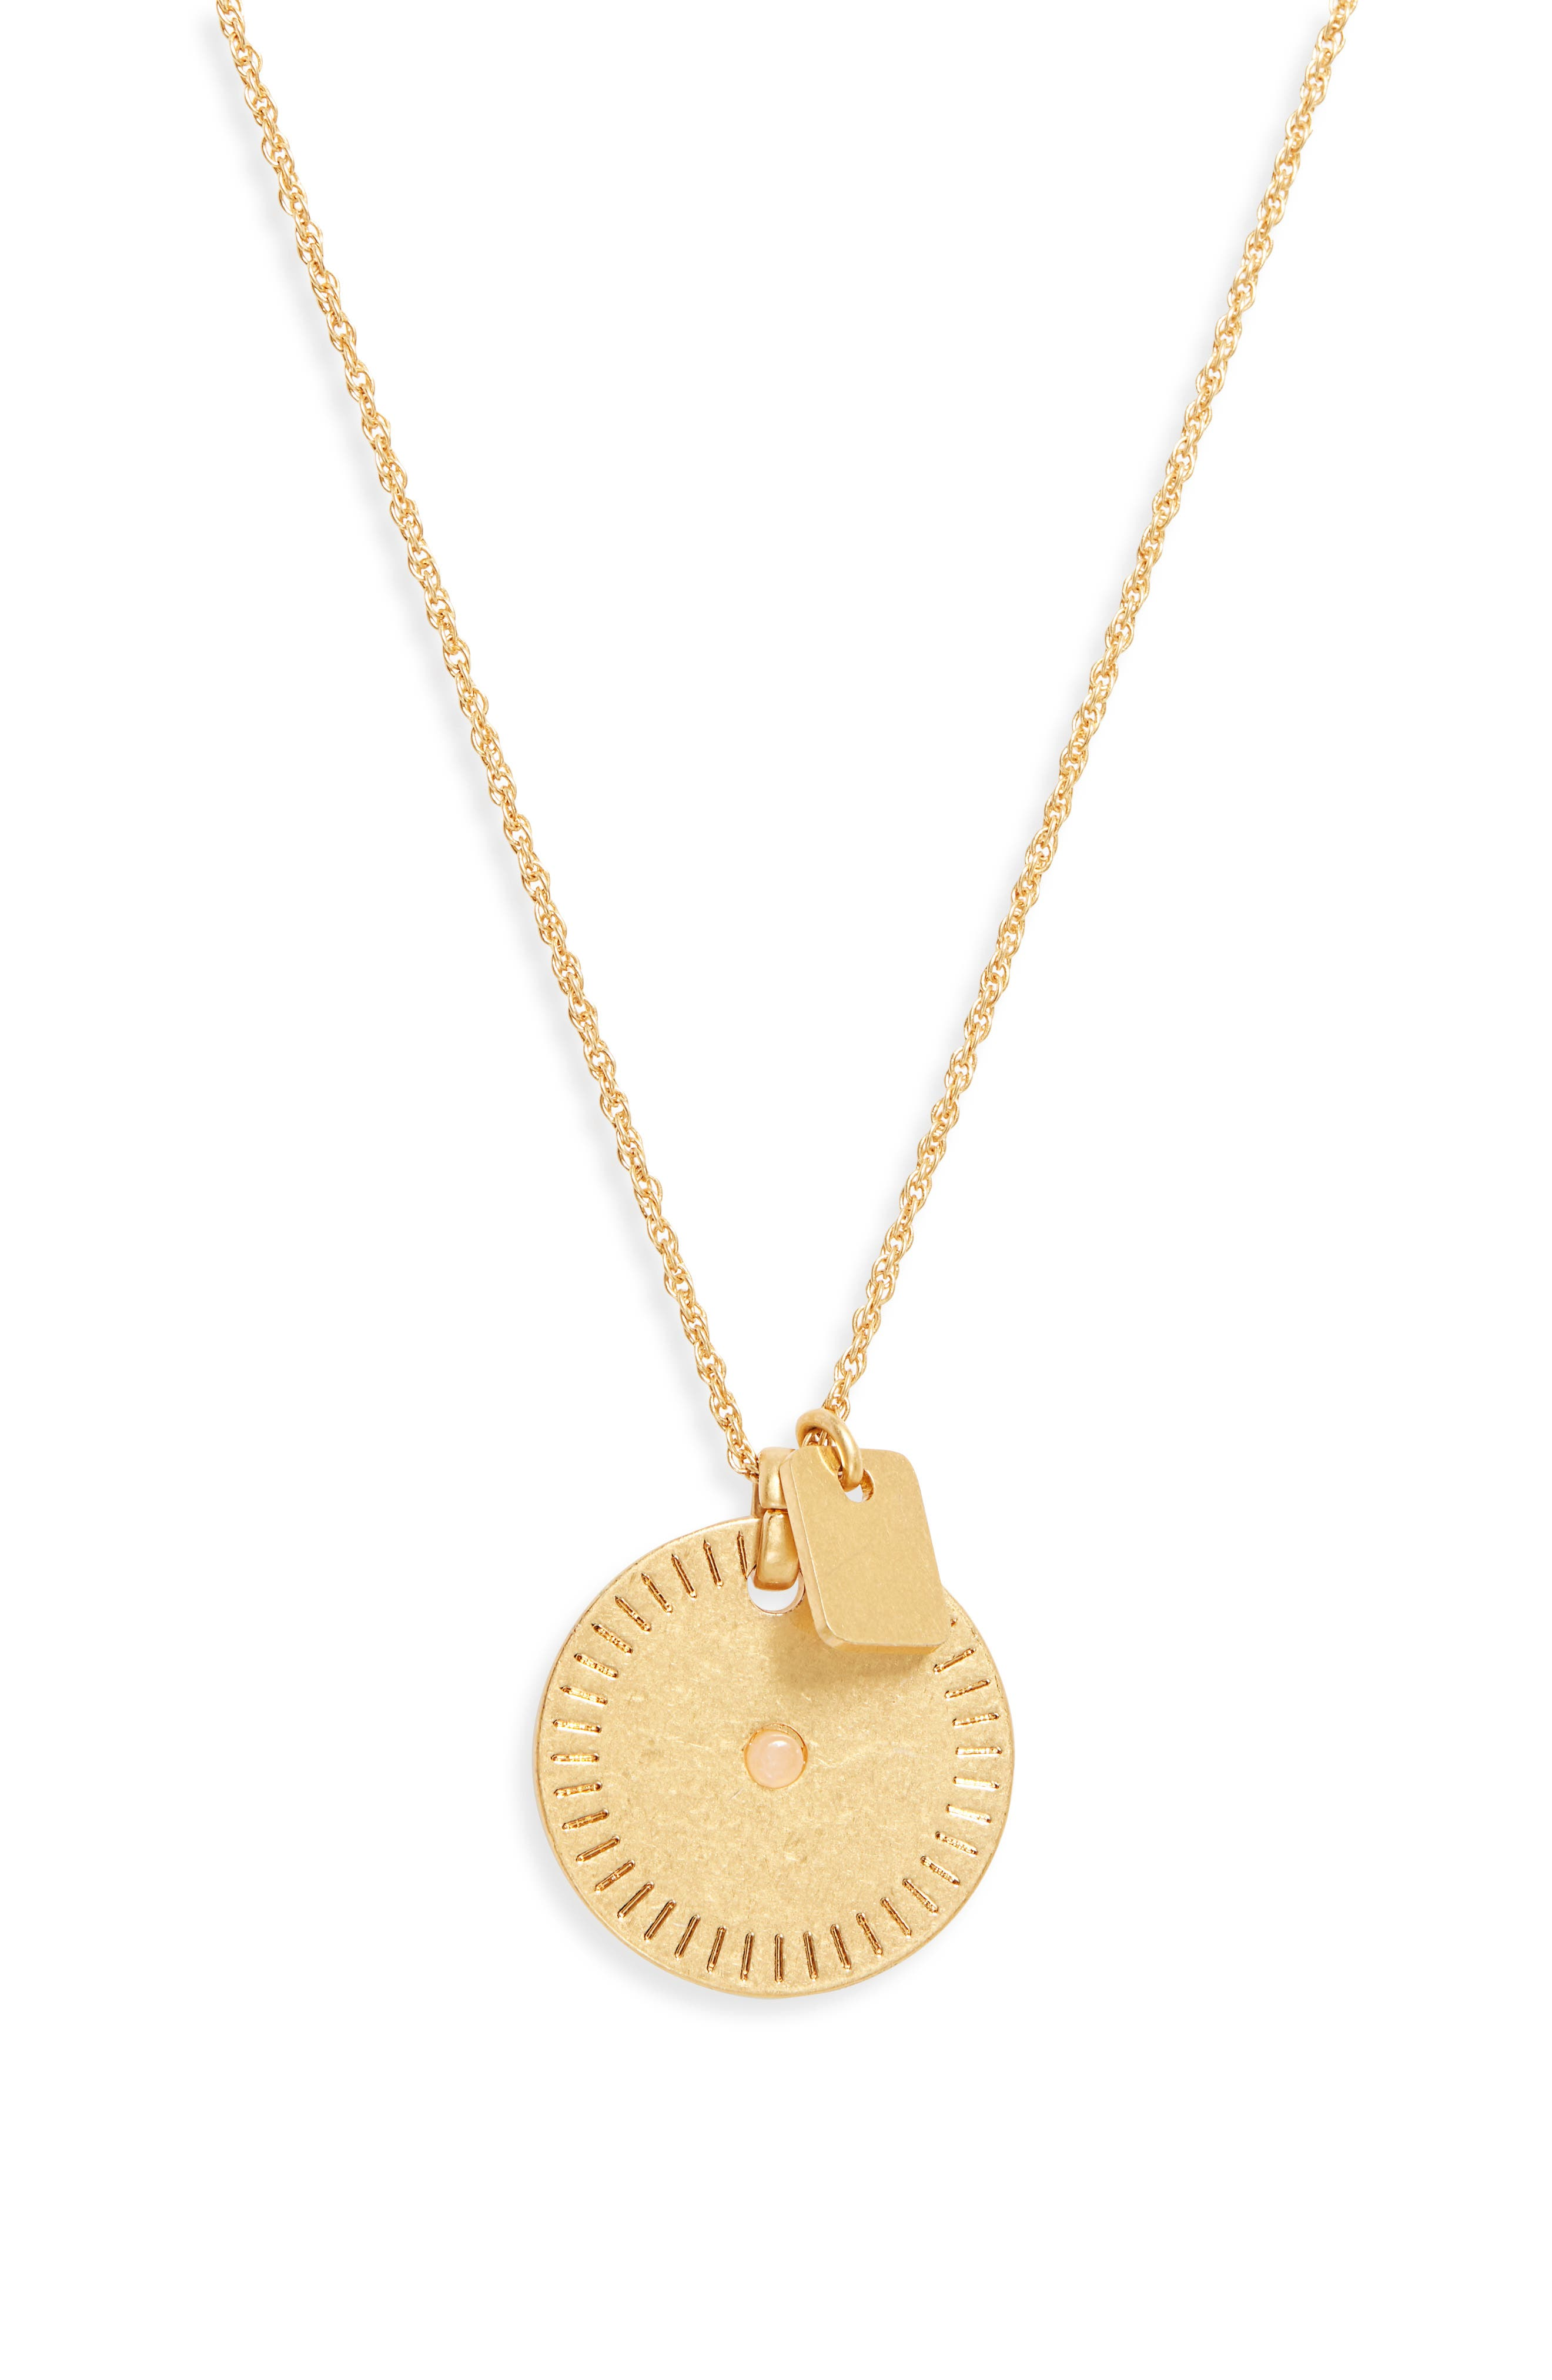 Image of Madewell Disc Charm Pendant Necklace